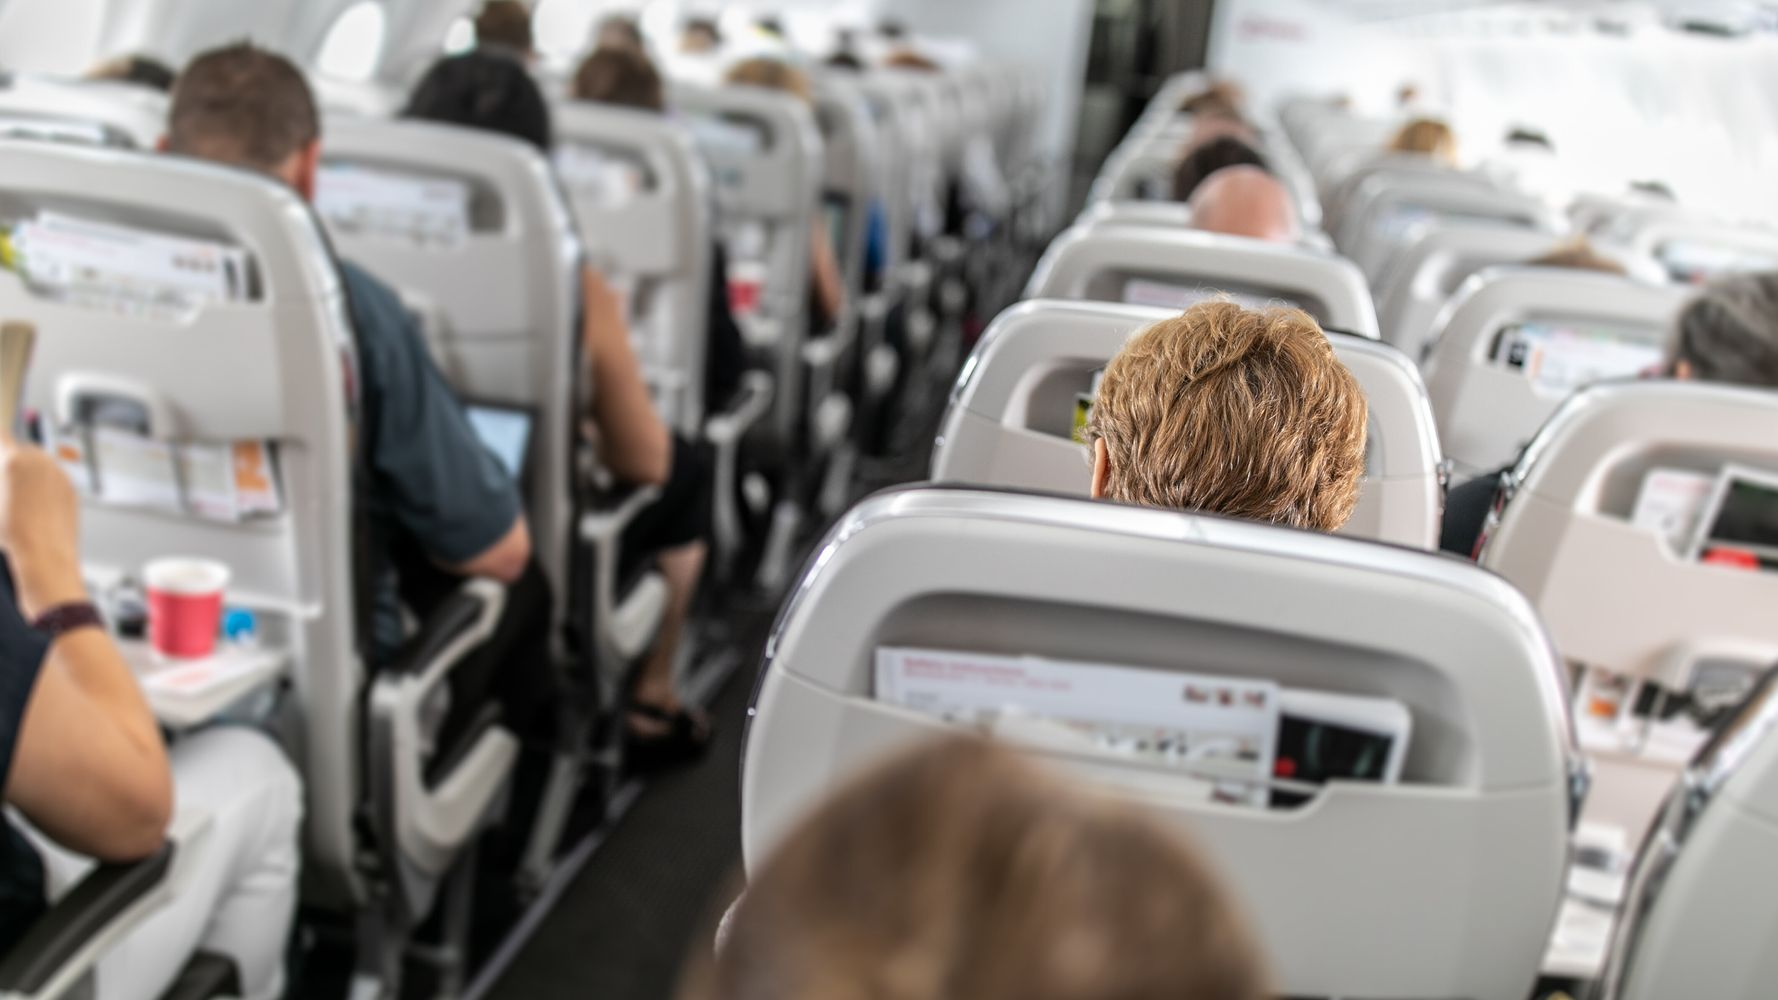 A GIF About How A Virus Can Spread On A Plane Is Freaking Everyone Out